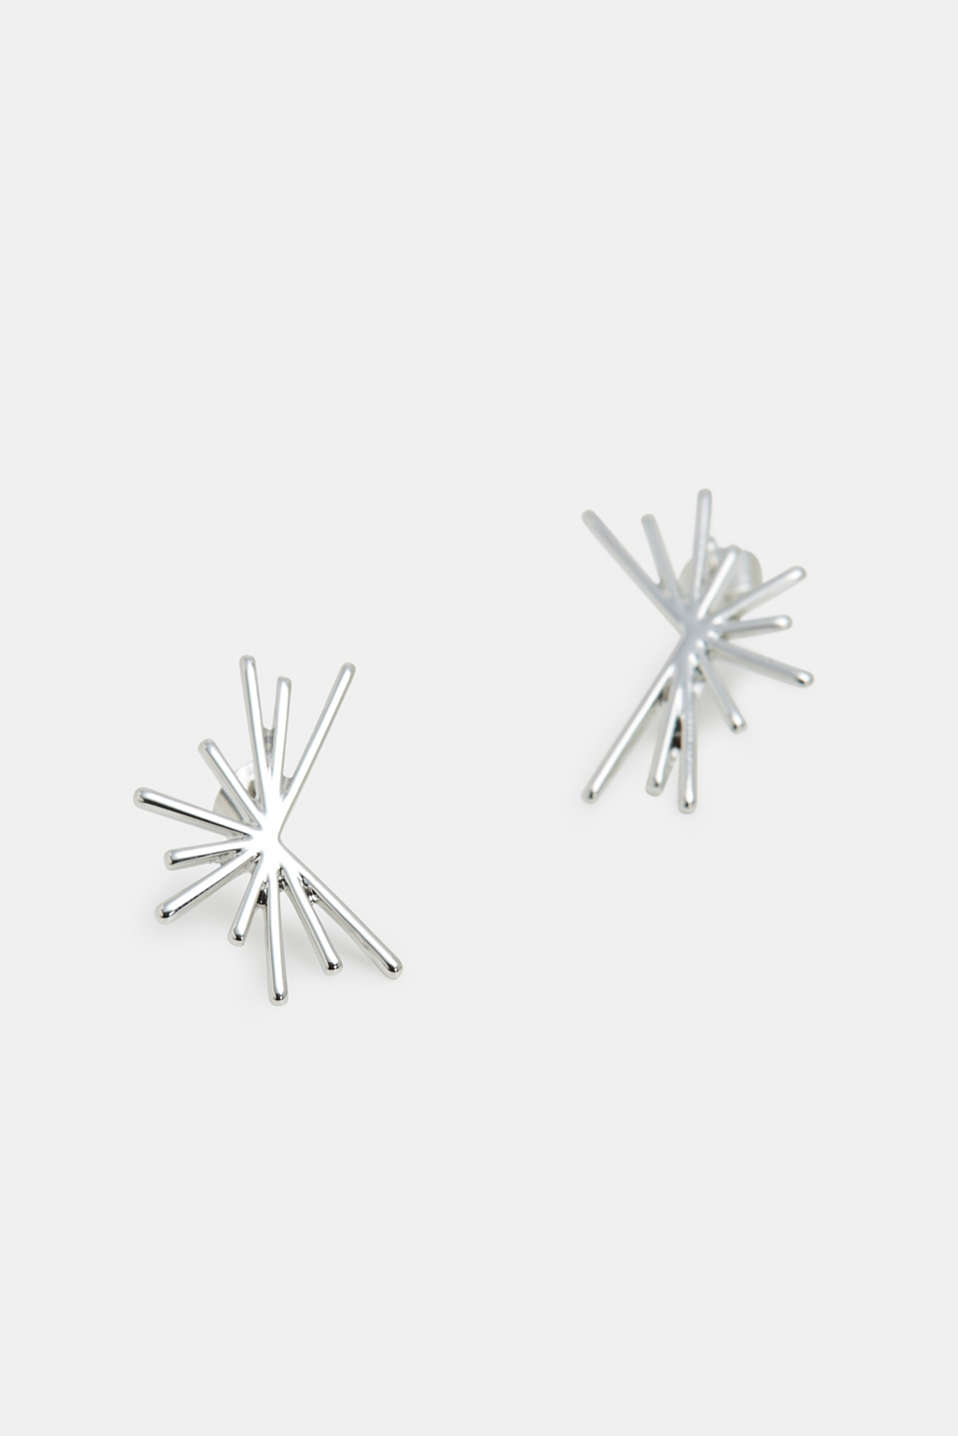 Esprit - Metal stud earrings in a star design